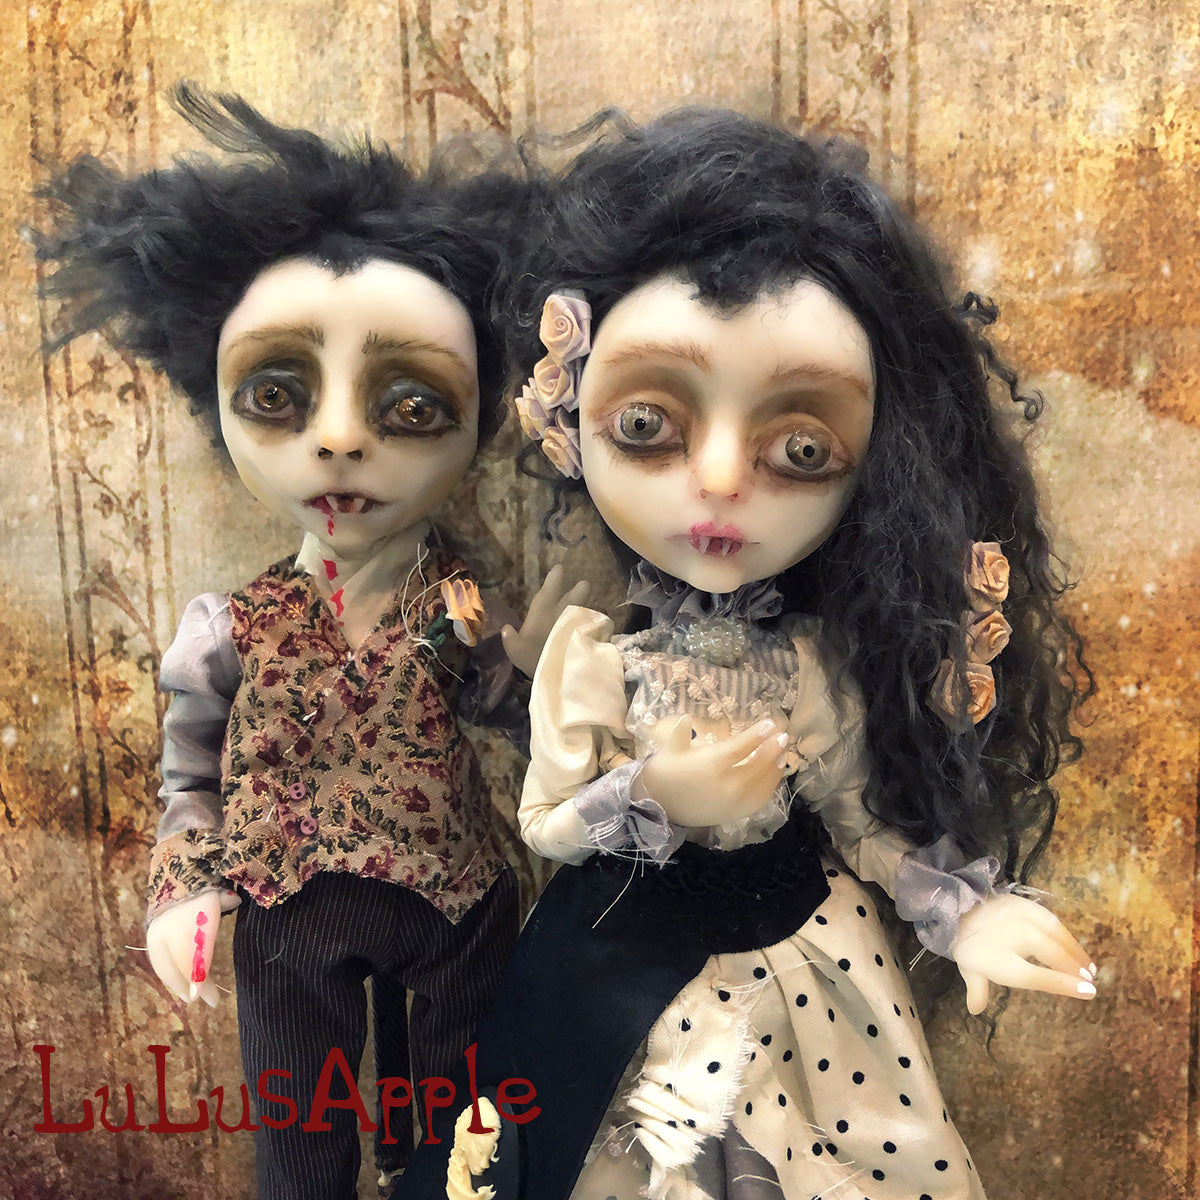 Albert and Victoria Vampire couple OOAK Art Doll LuLusApple